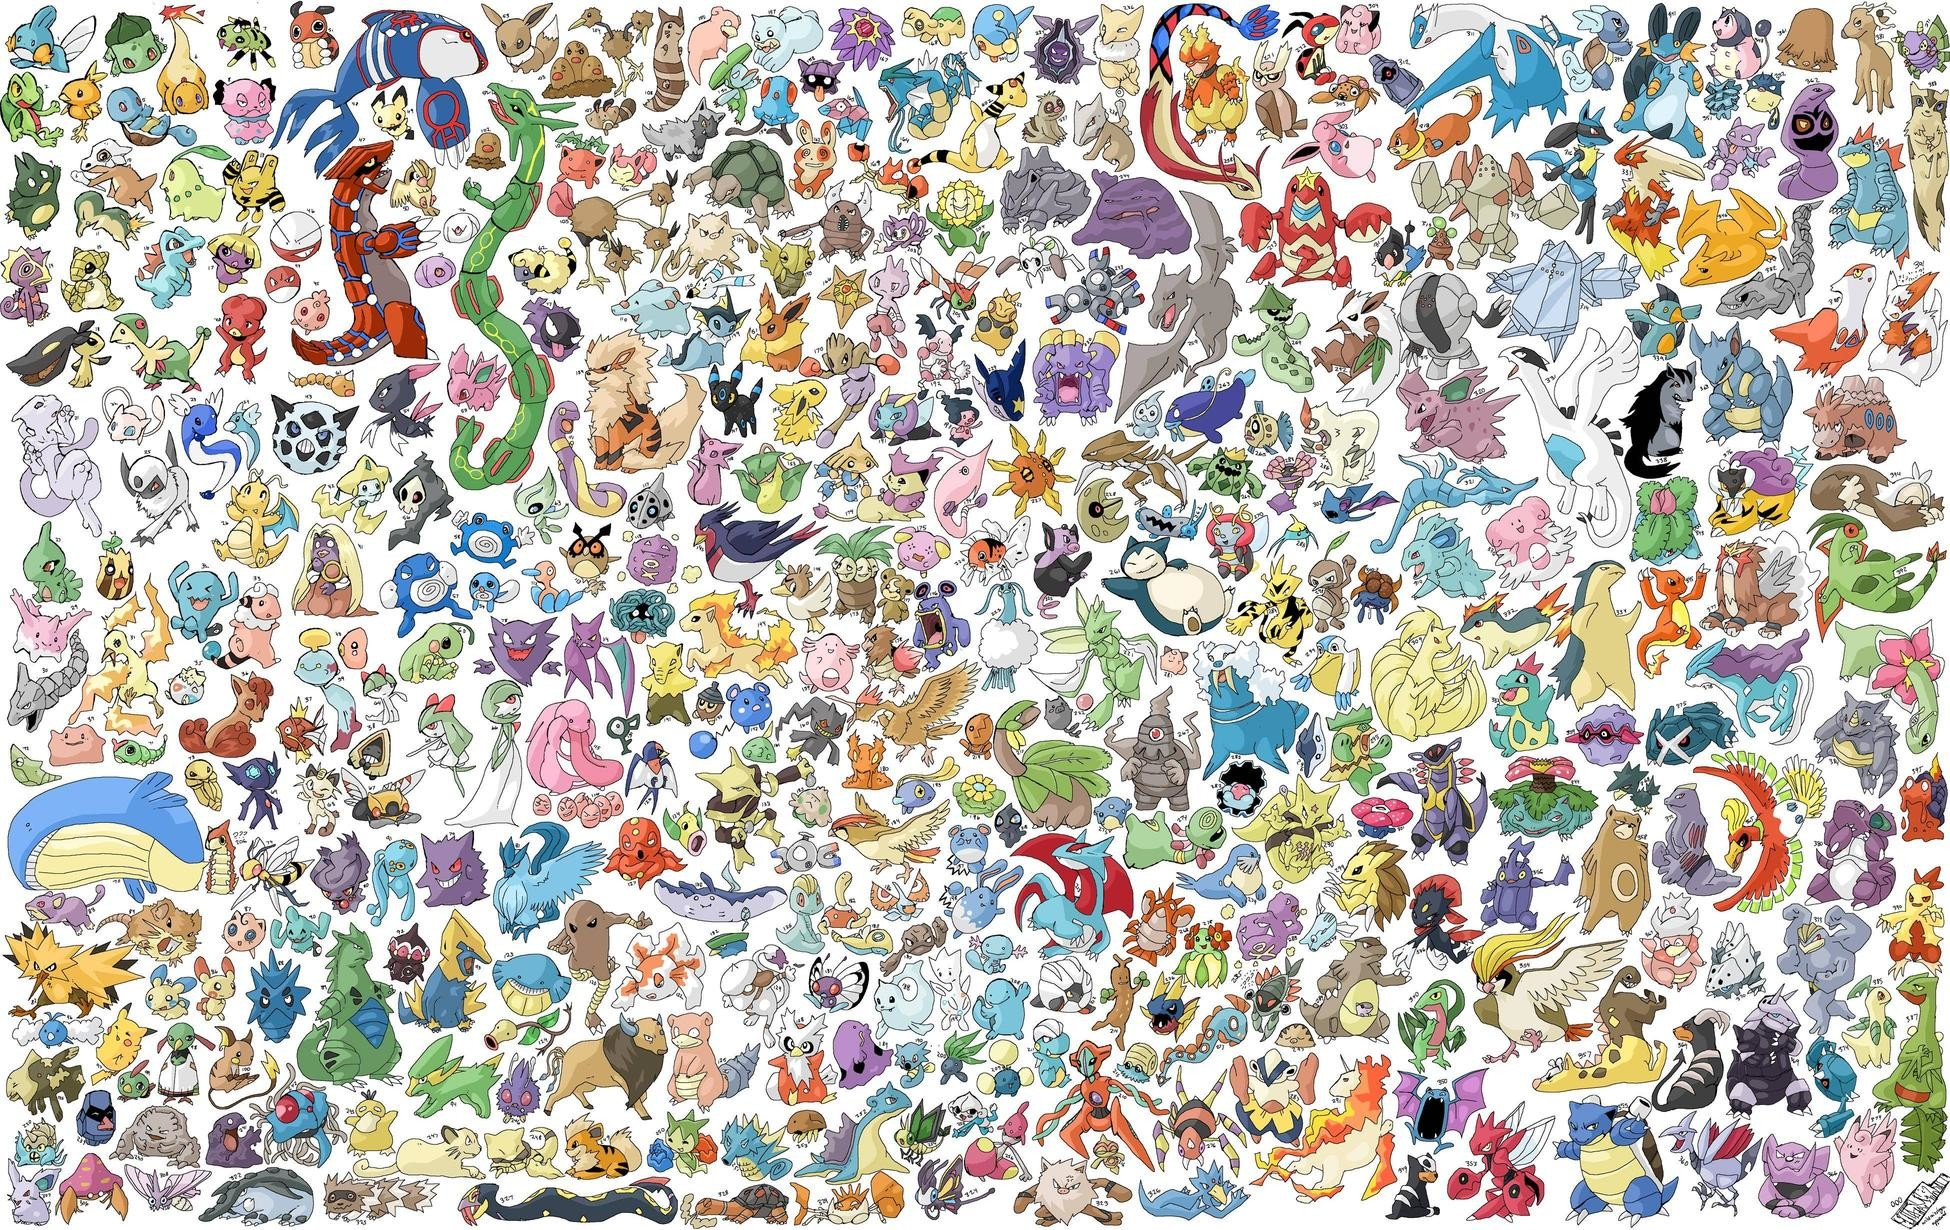 1950x1230 Pokemon Backgrounds Free EPS, PSD, JPEG Format Download 1920×1080 Pokemon  Backgrounds Pictures